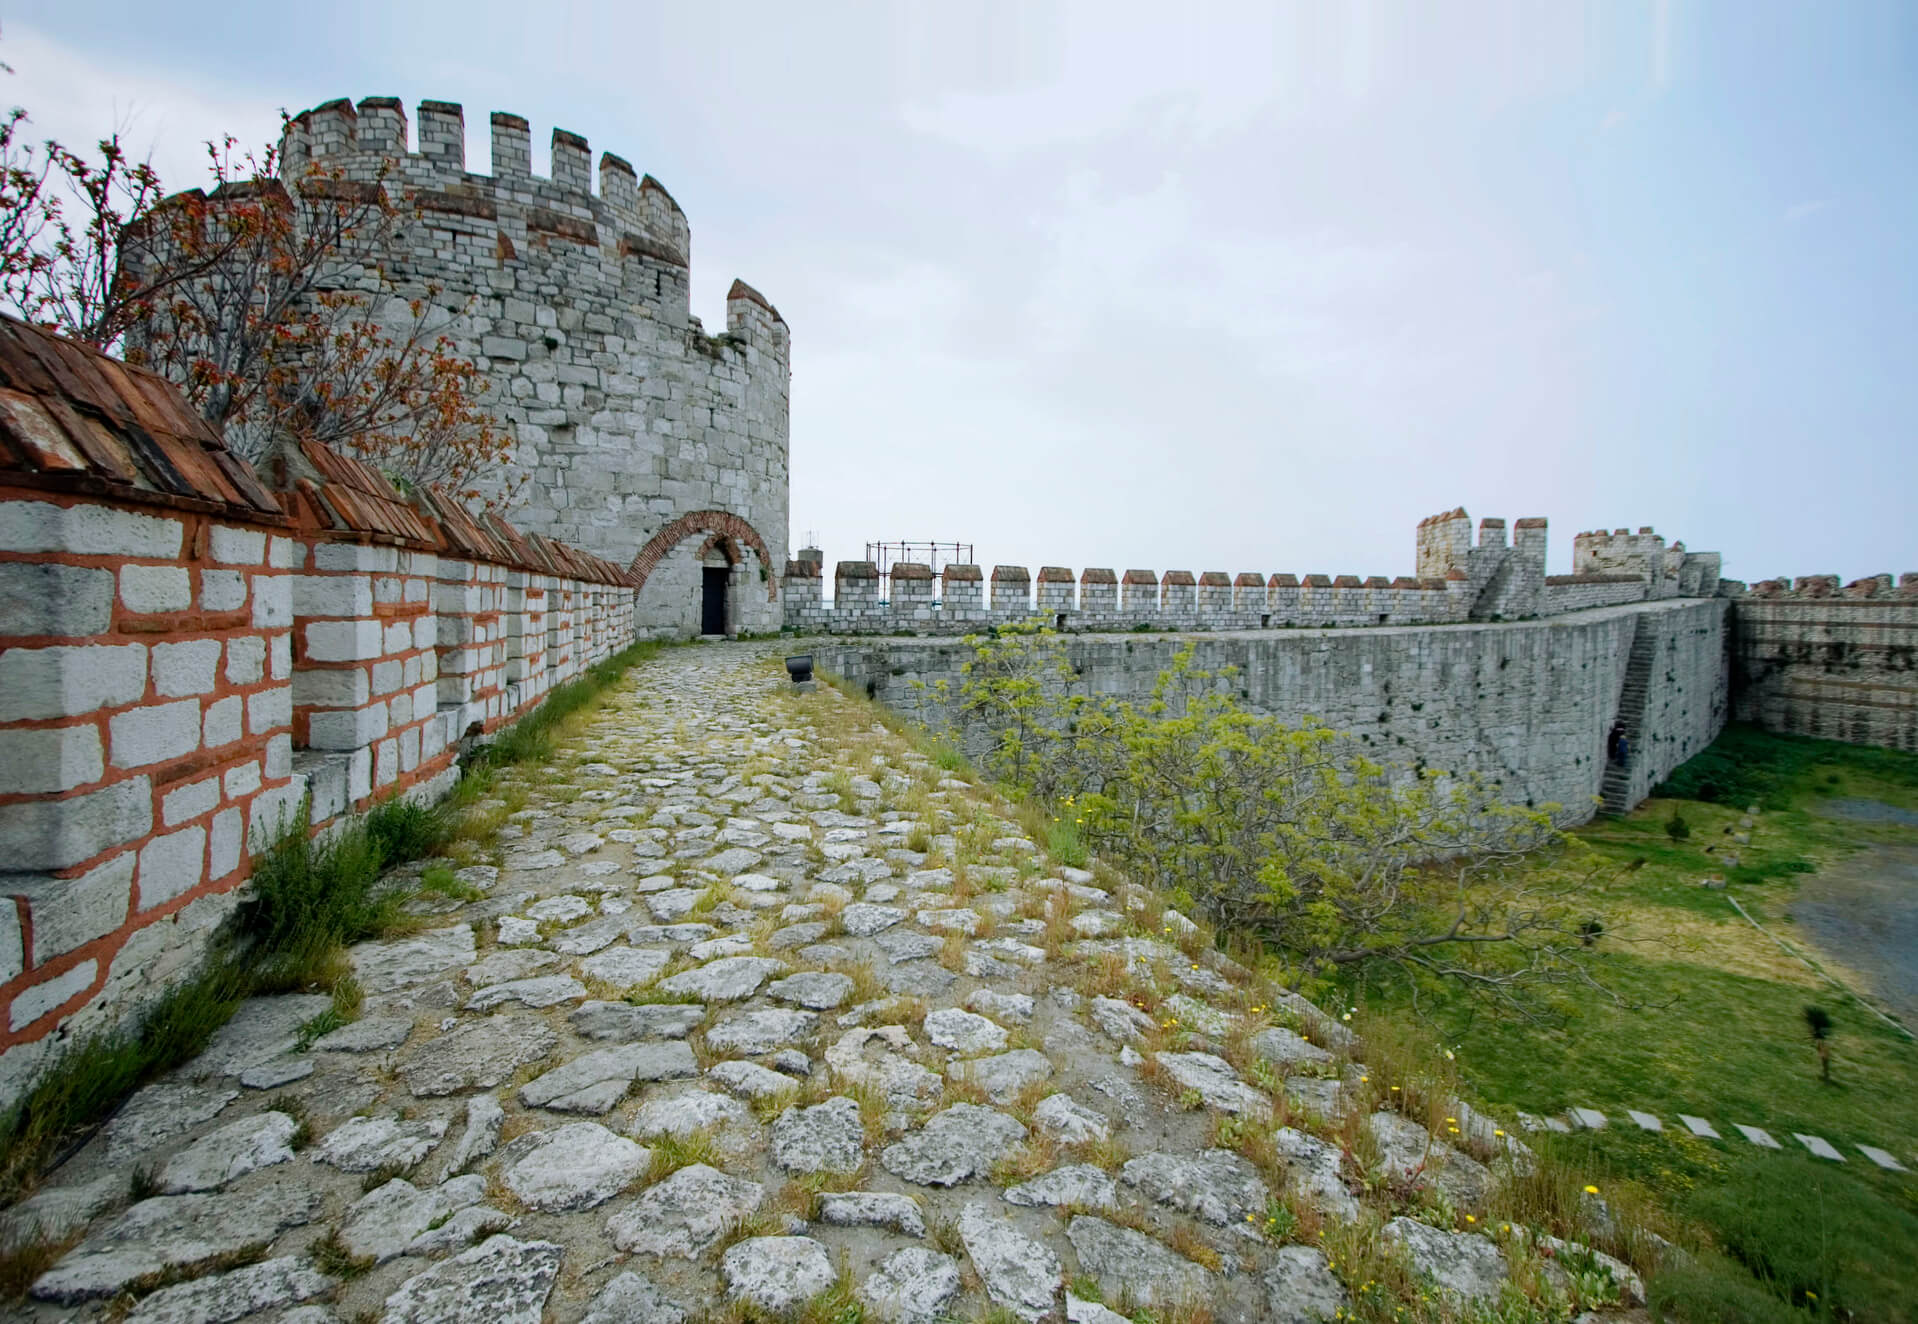 Wall of a castle or fortress